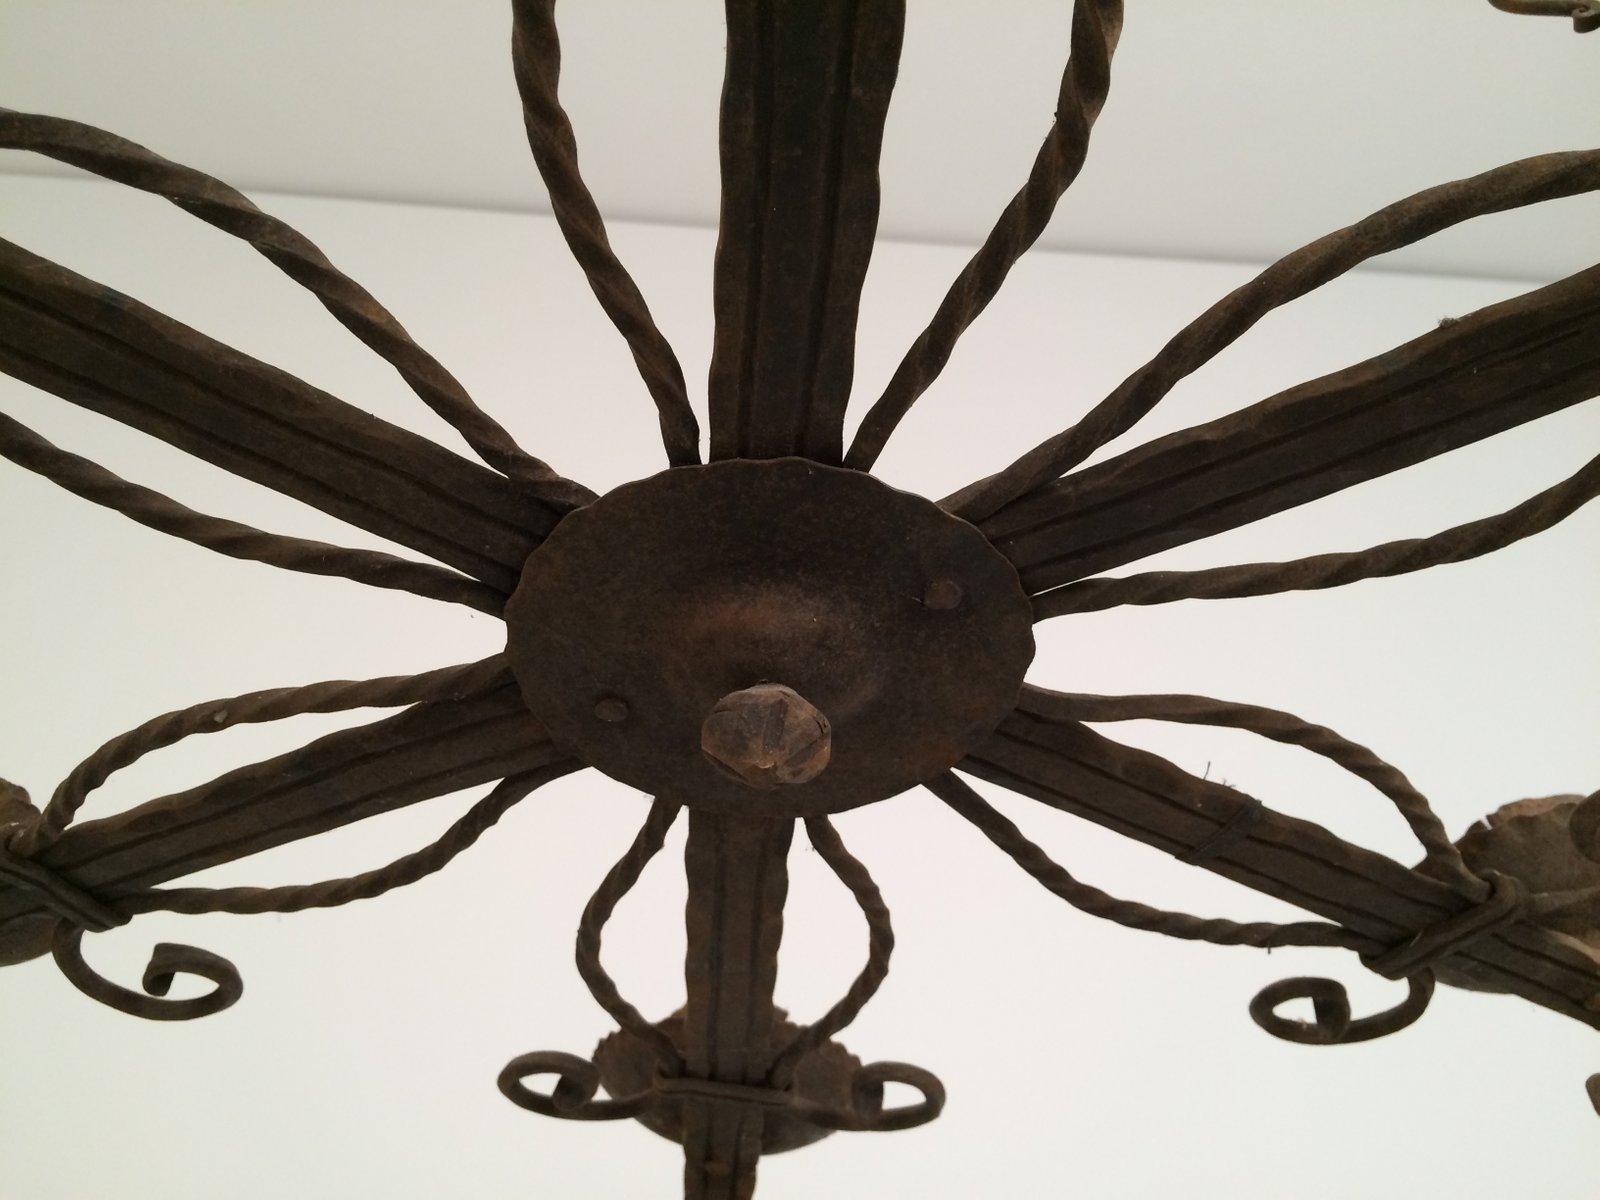 Five Candle Holder Wrought Iron Chandelier 1920s for sale at Pamono